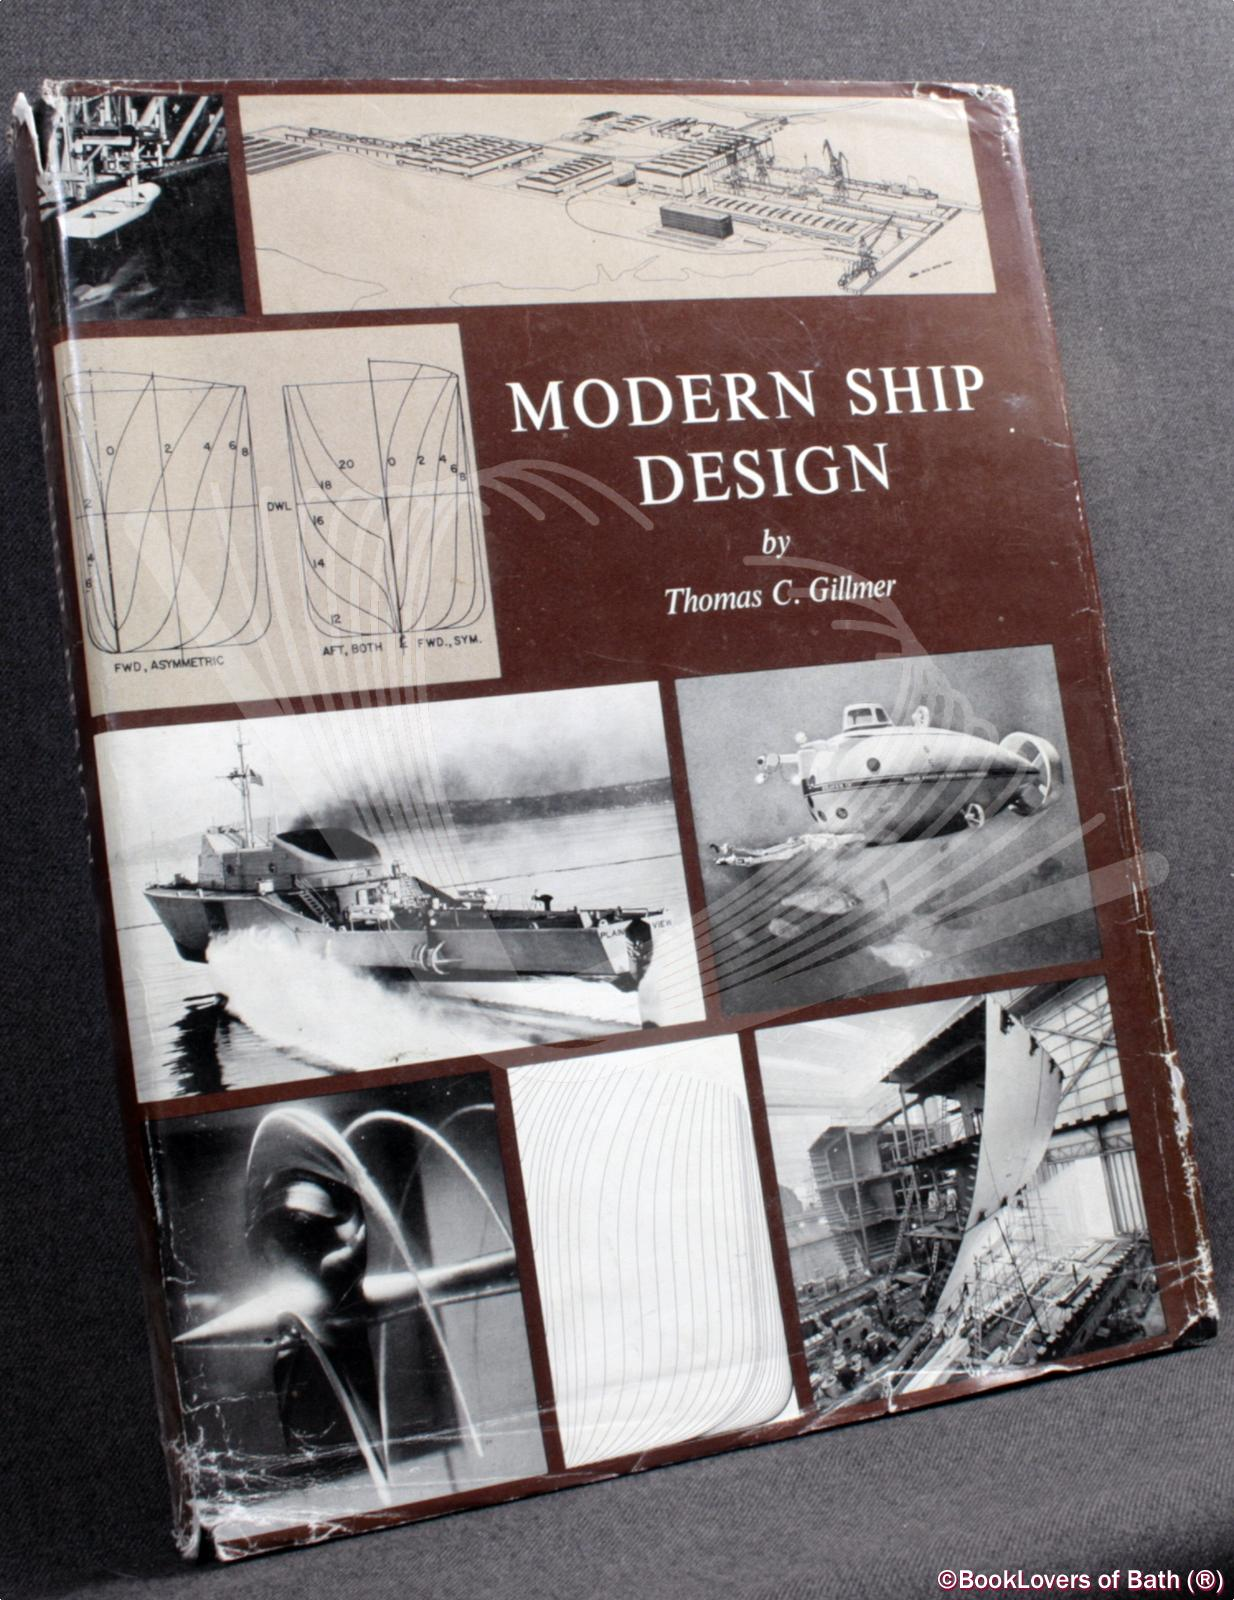 Modern Ship Design - Thomas C. [Charles] Gillmer